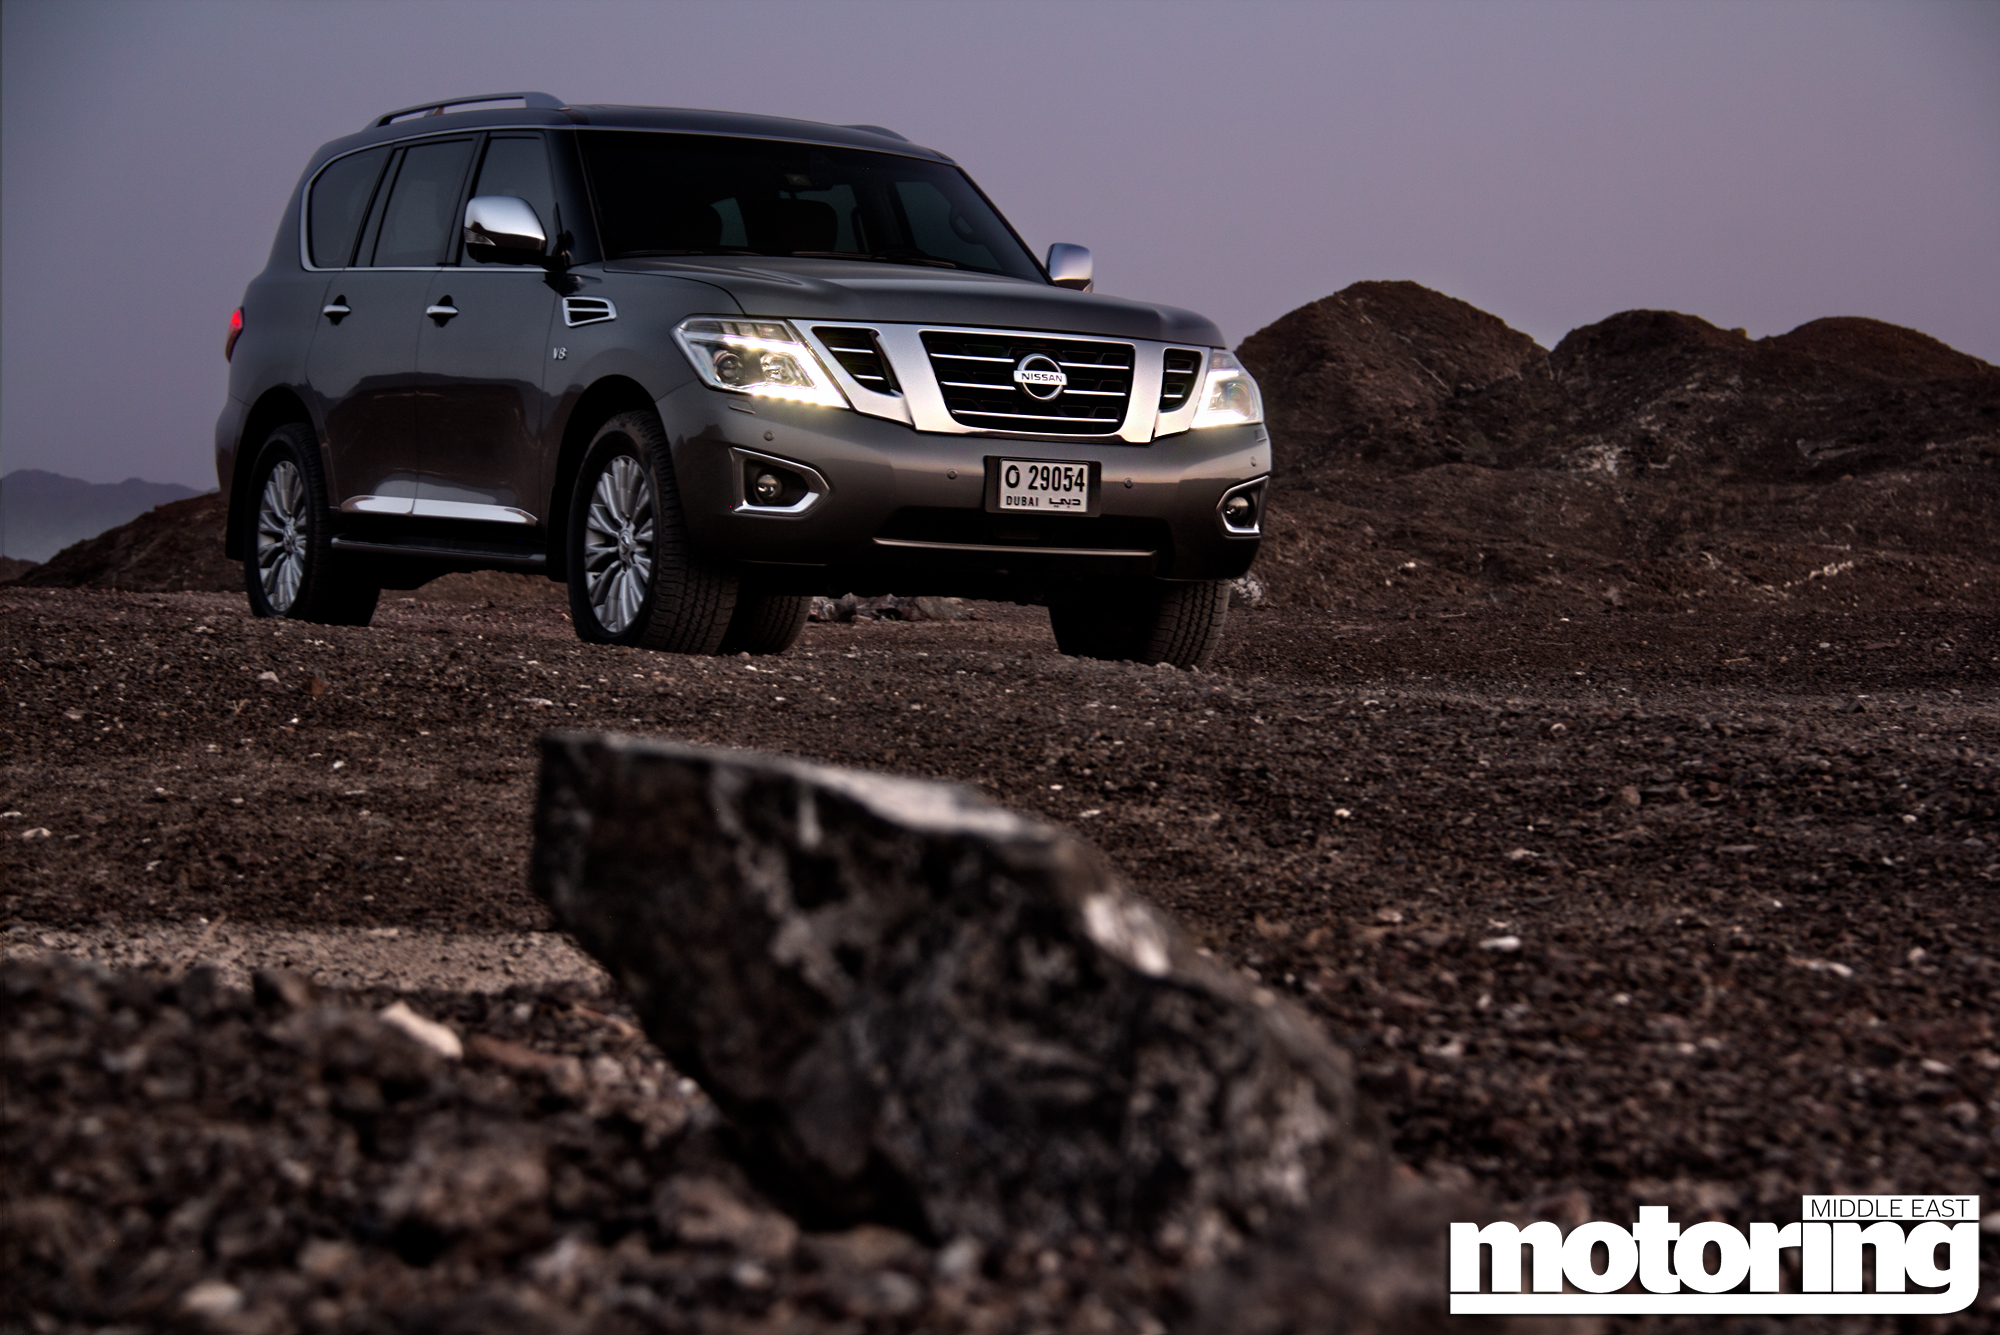 2014 nissan patrol review prices spec changes for 2014motoring 2014 nissan patrol review vanachro Image collections